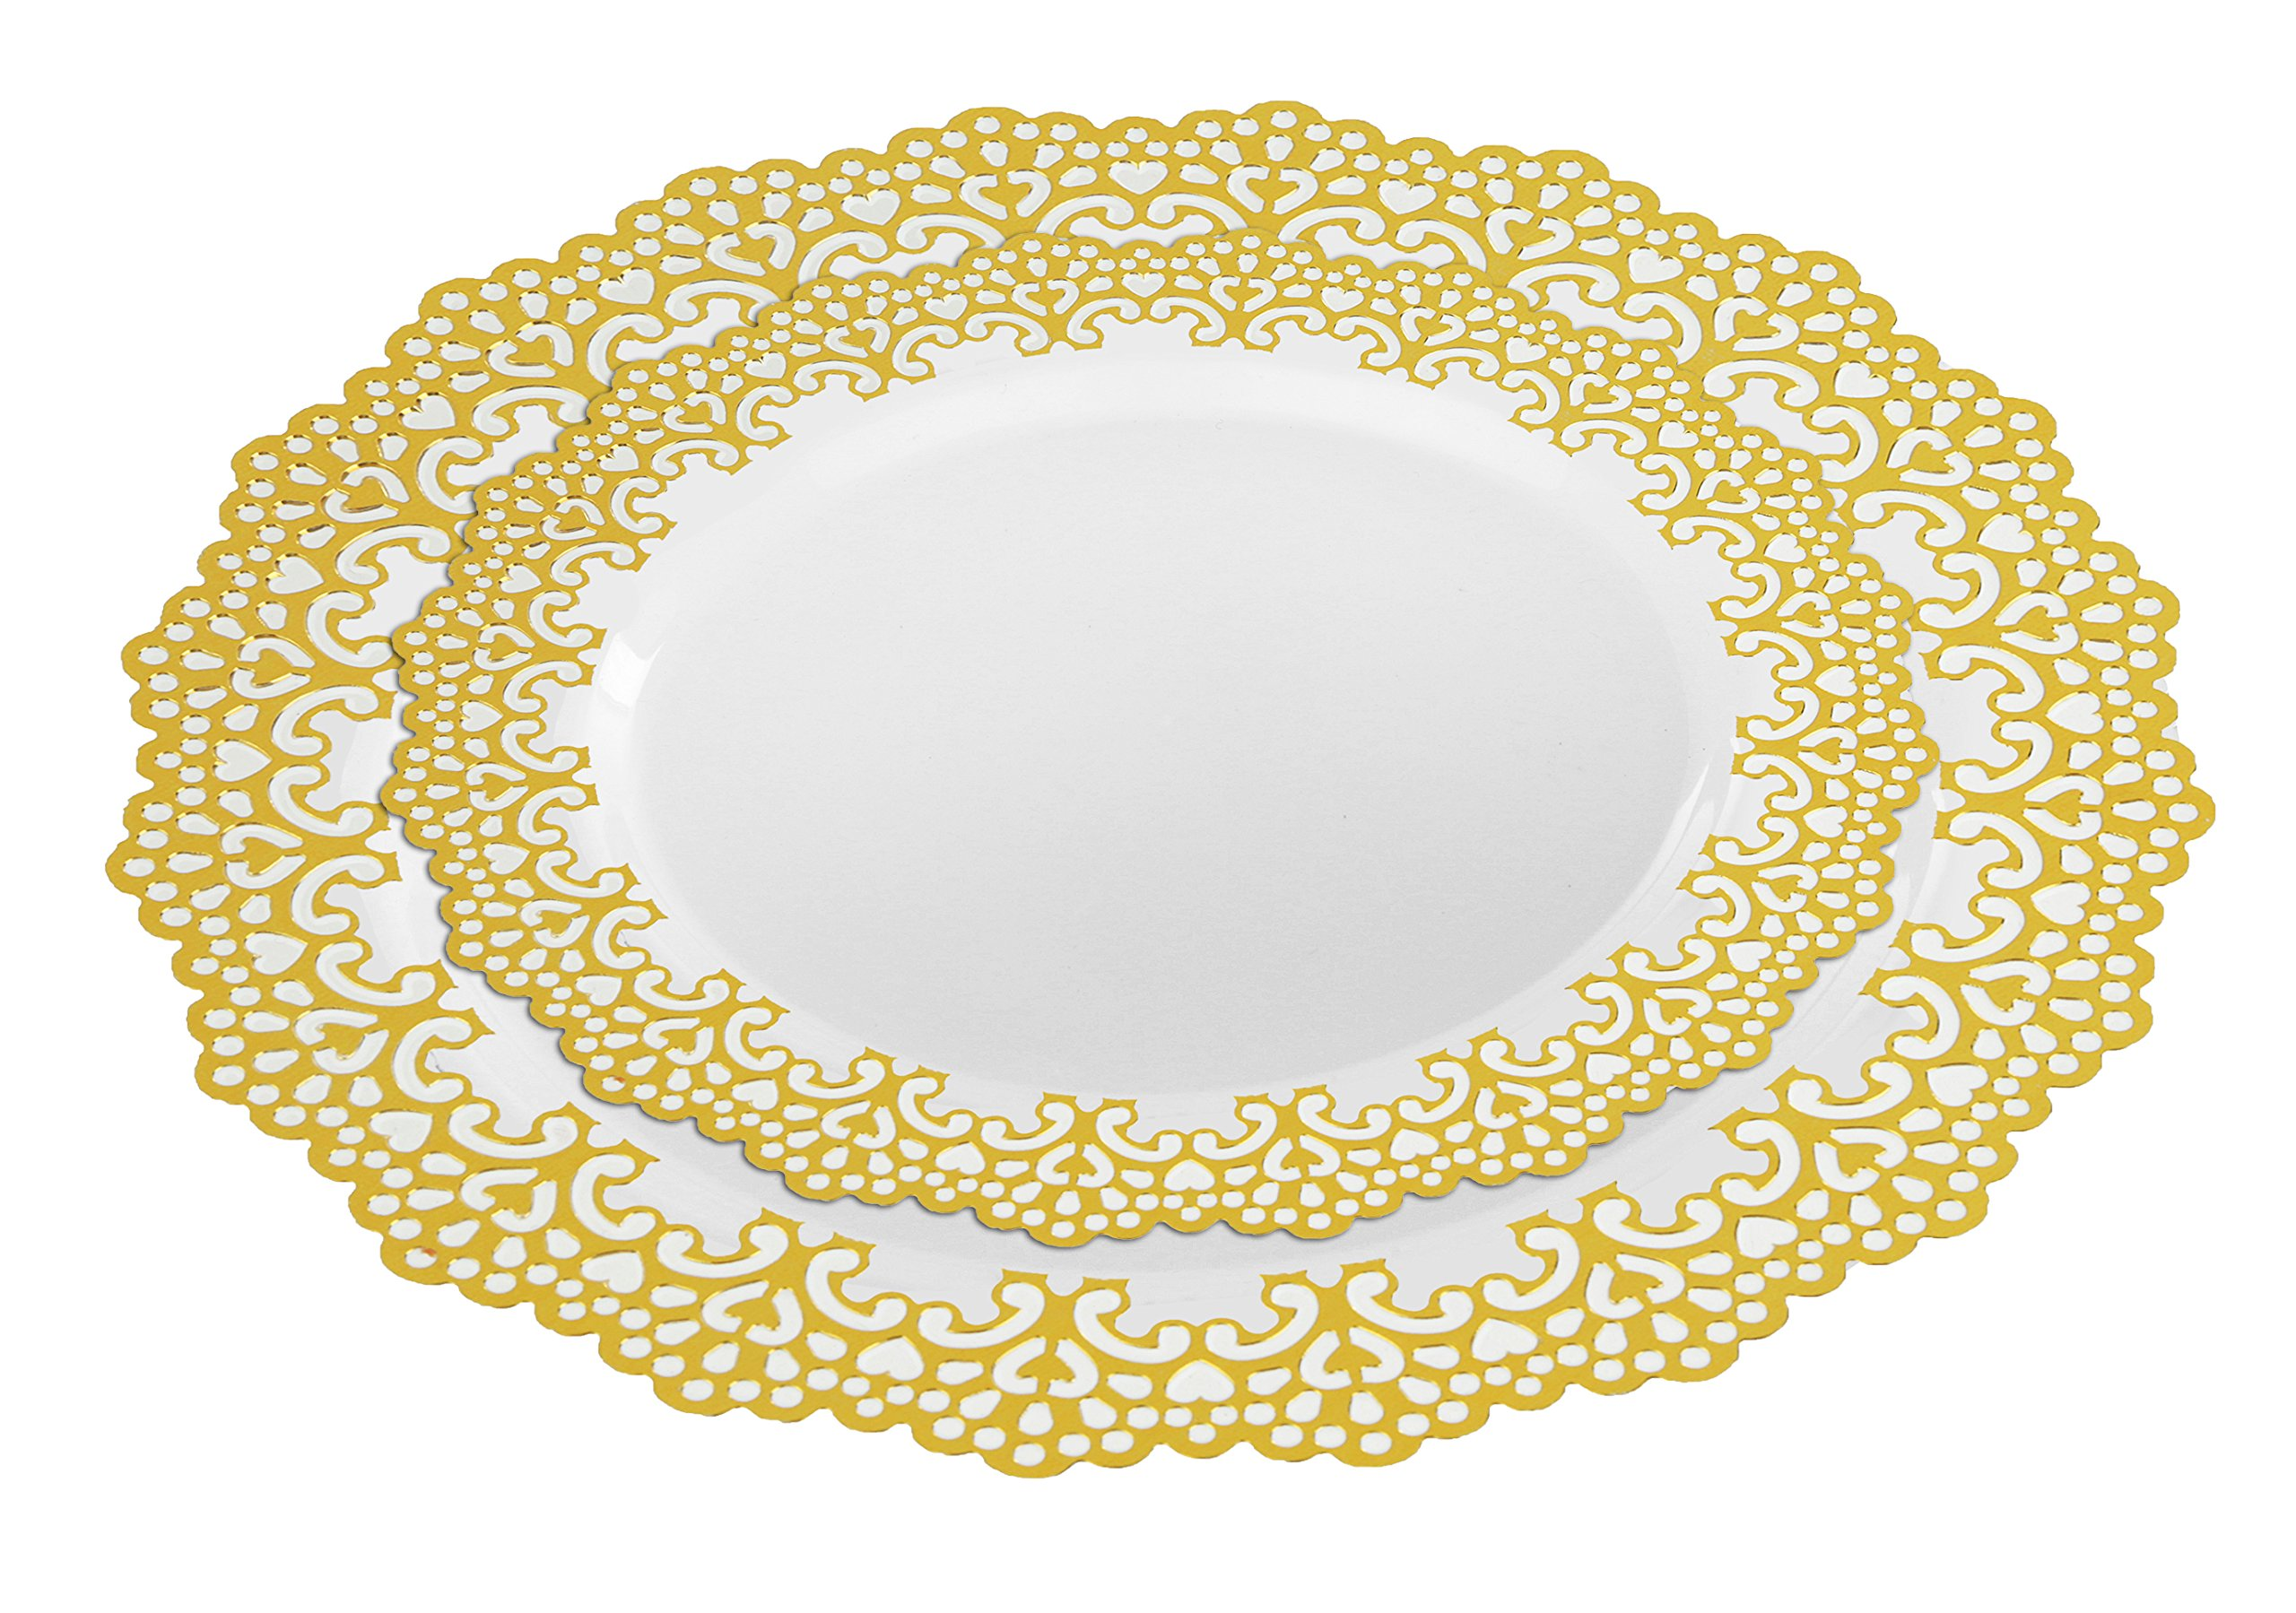 Disposable Plastic Plates, Hard and Reusable, Real China Look - Party Package Set - Includes 10'' Inch Dinner Plates and 7.5'' Inch Salad/Dessert Plates (Gold, 240 Piece)